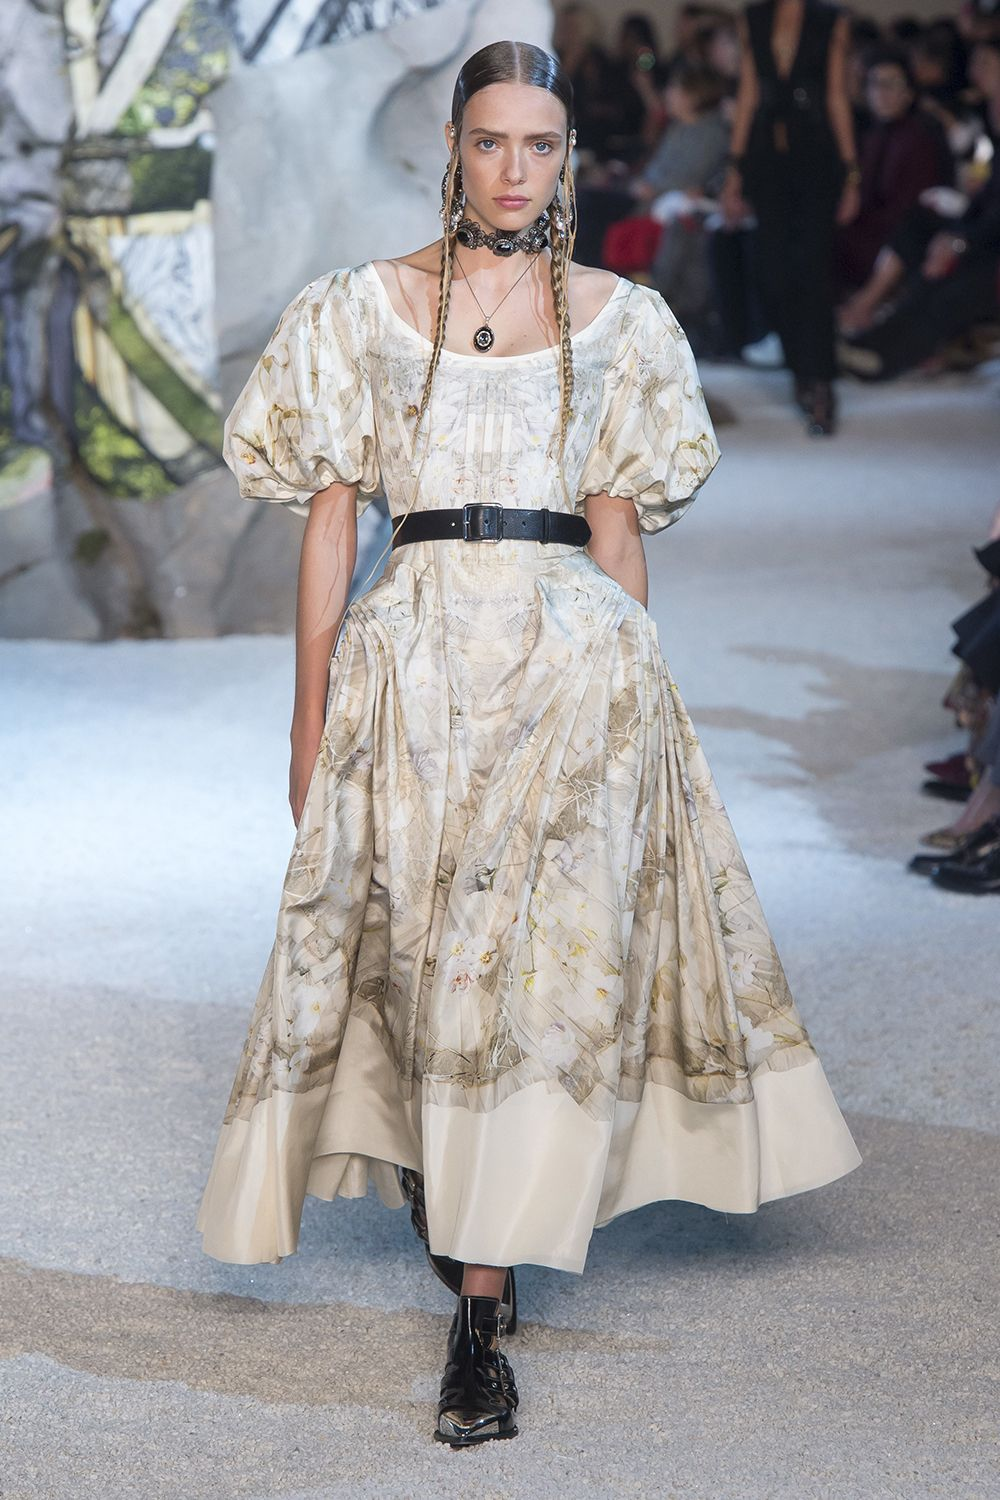 Spring/Summer 2019 Fashion Trends: Looks You Need to Know